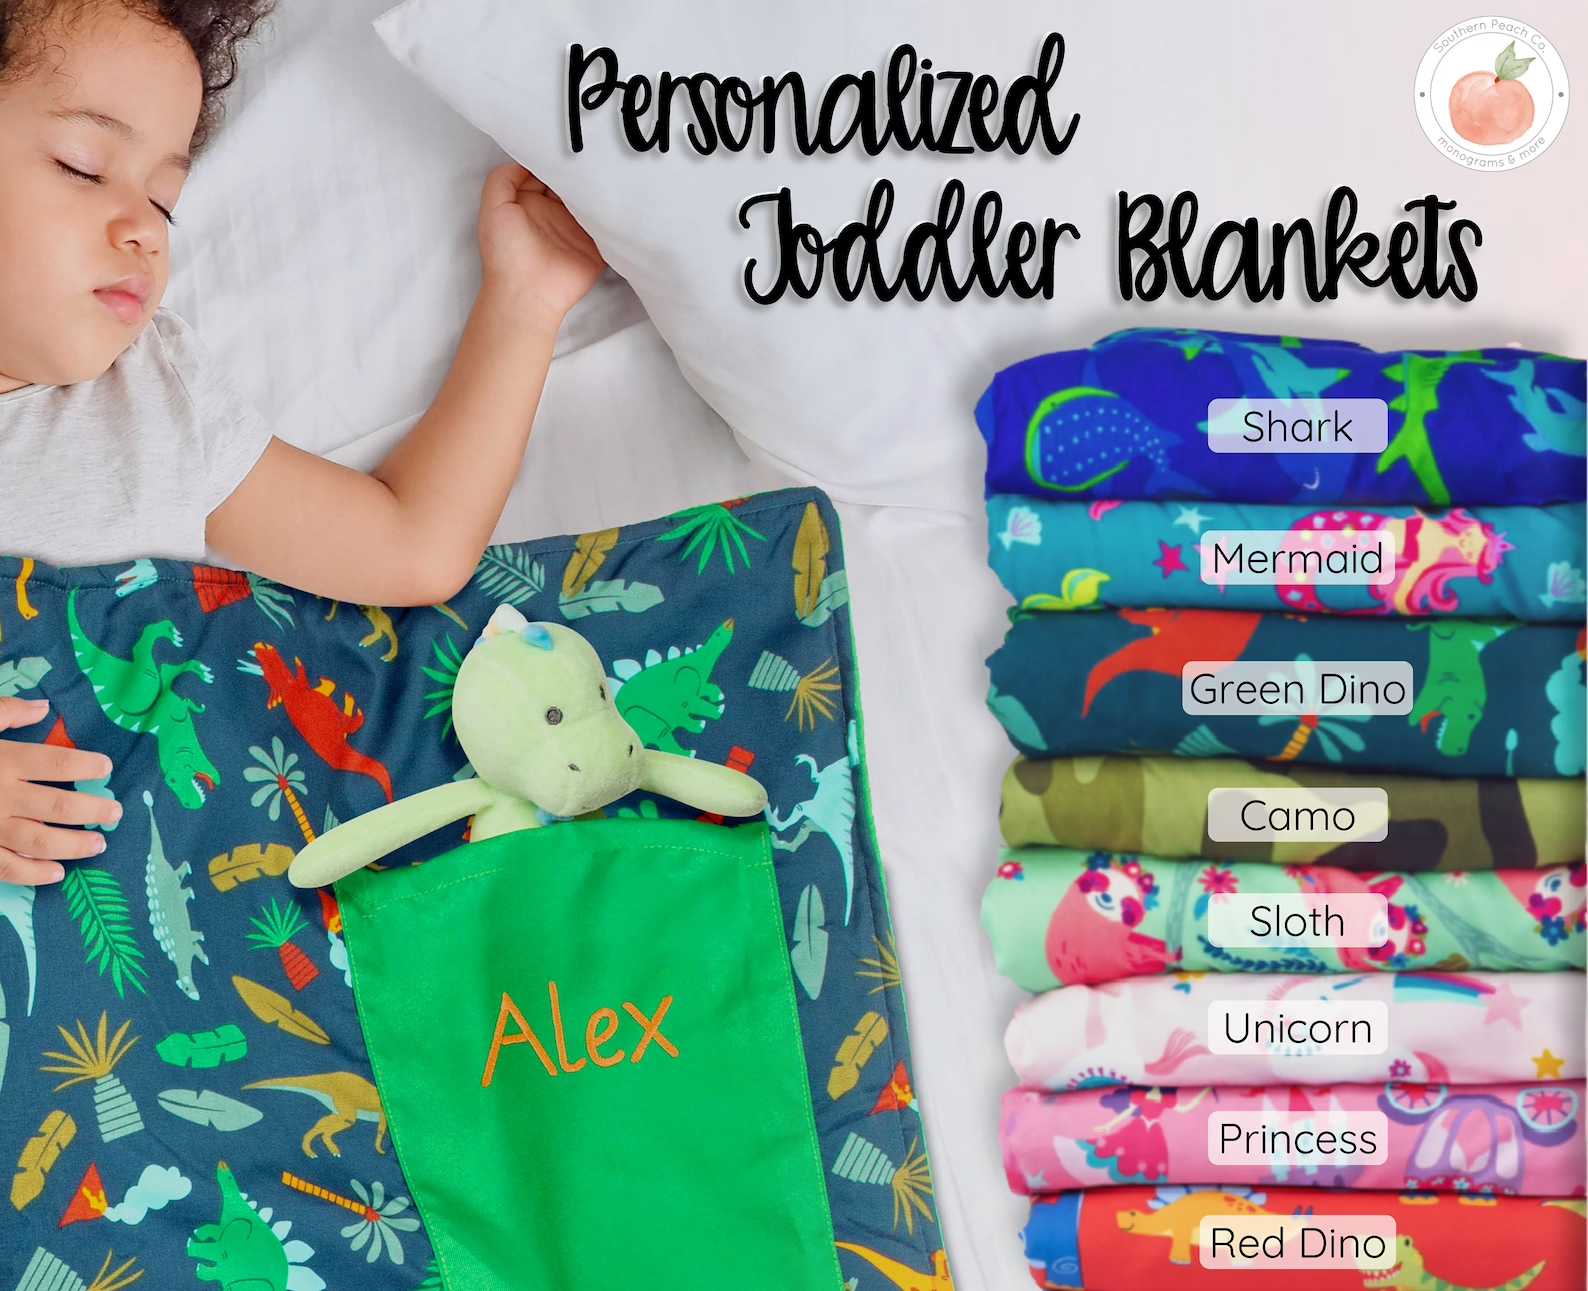 Child sleeping in colorful personalized blanket with pocket for stuffed animal